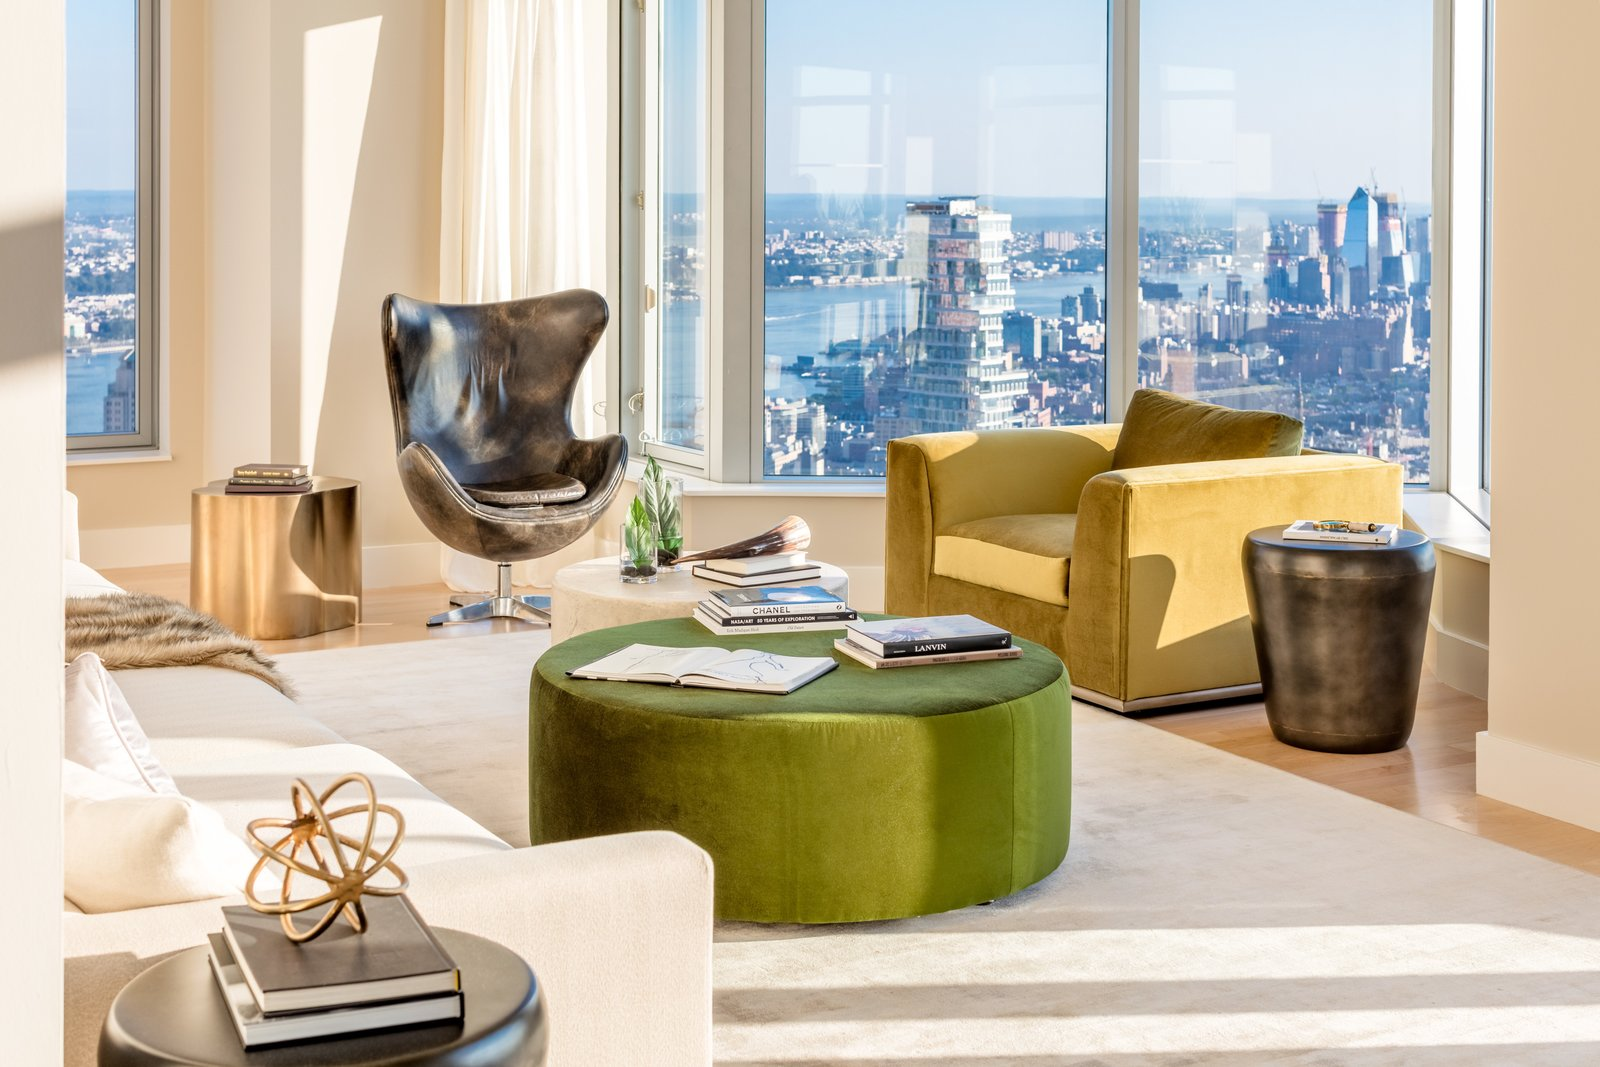 Photo 3 of 9 in Tour This Frank Gehry-Designed Penthouse in NYC That's Back on the Market